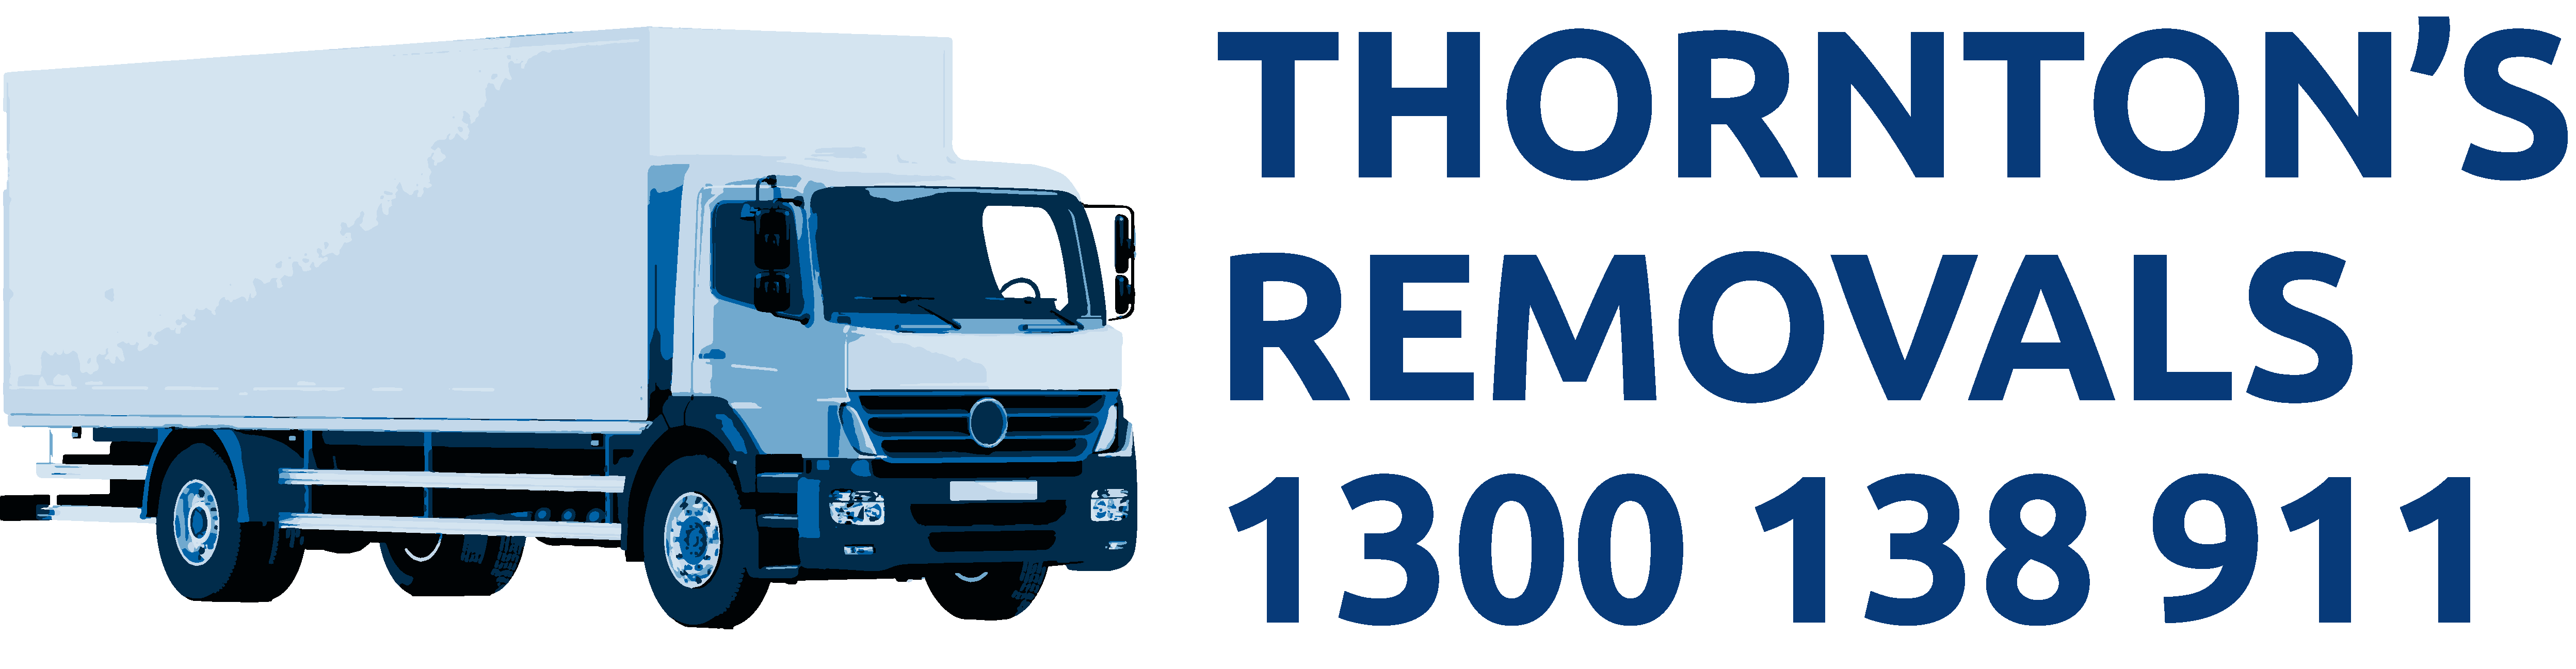 thornton's removals logo